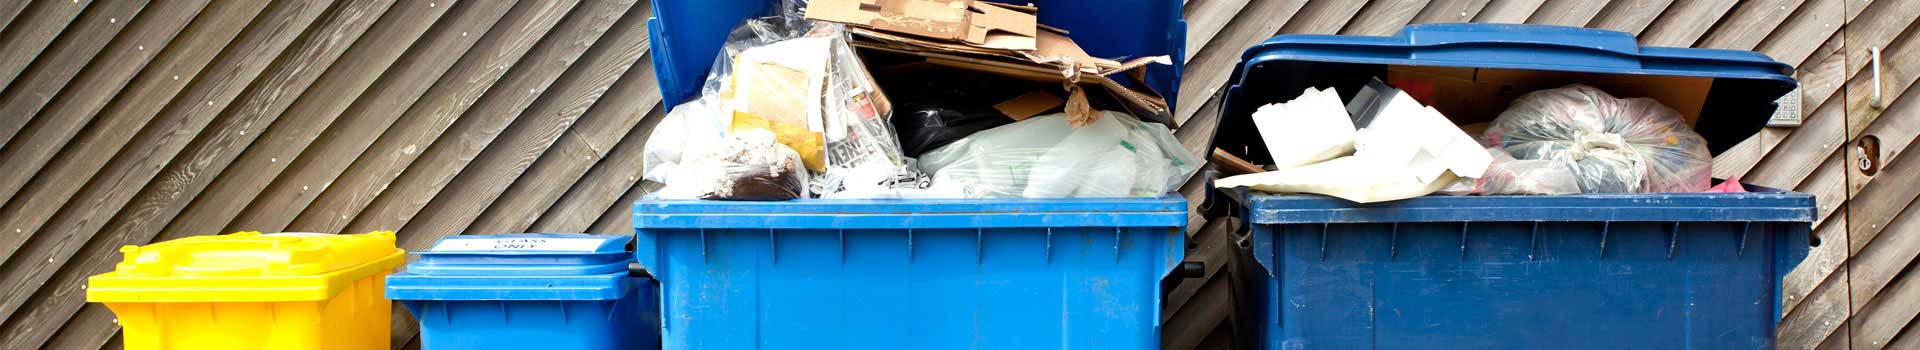 Commercial Waste Collections & Disposal